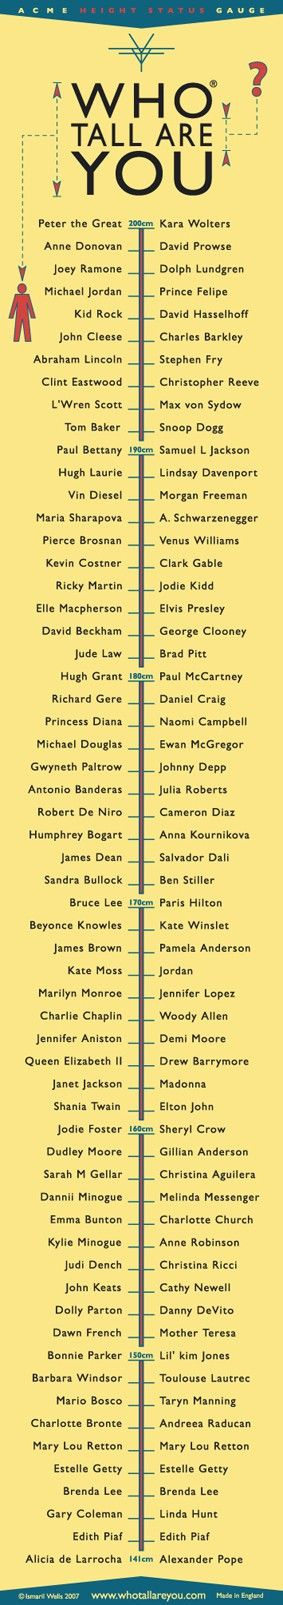 I'm as tall as Jodie Foster and Sheryl Crow!